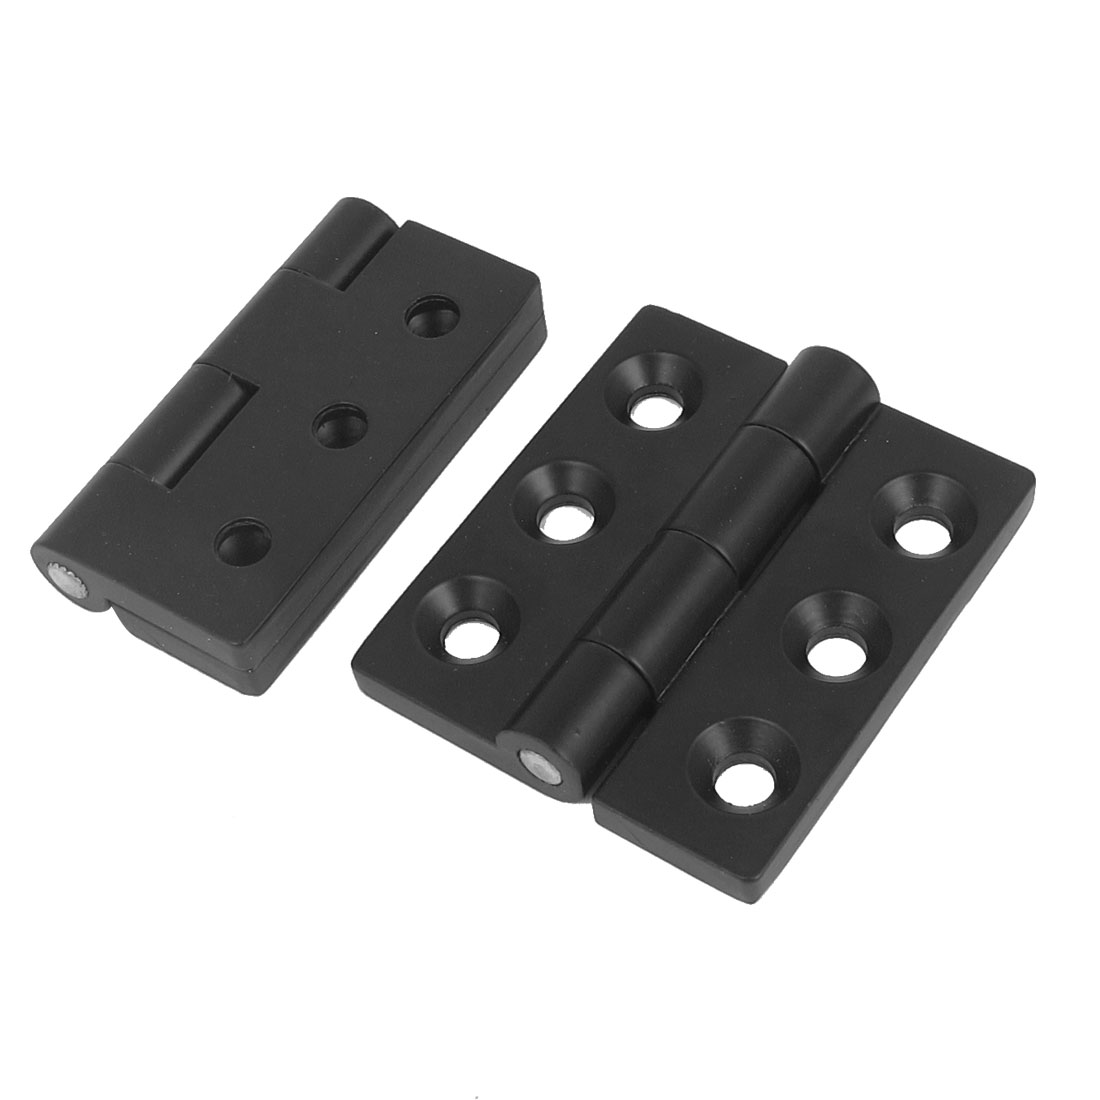 Furniture Cabinet Door Black Aluminium Ball Bearing Butt Hinge 64mm x 56mm 2pcs